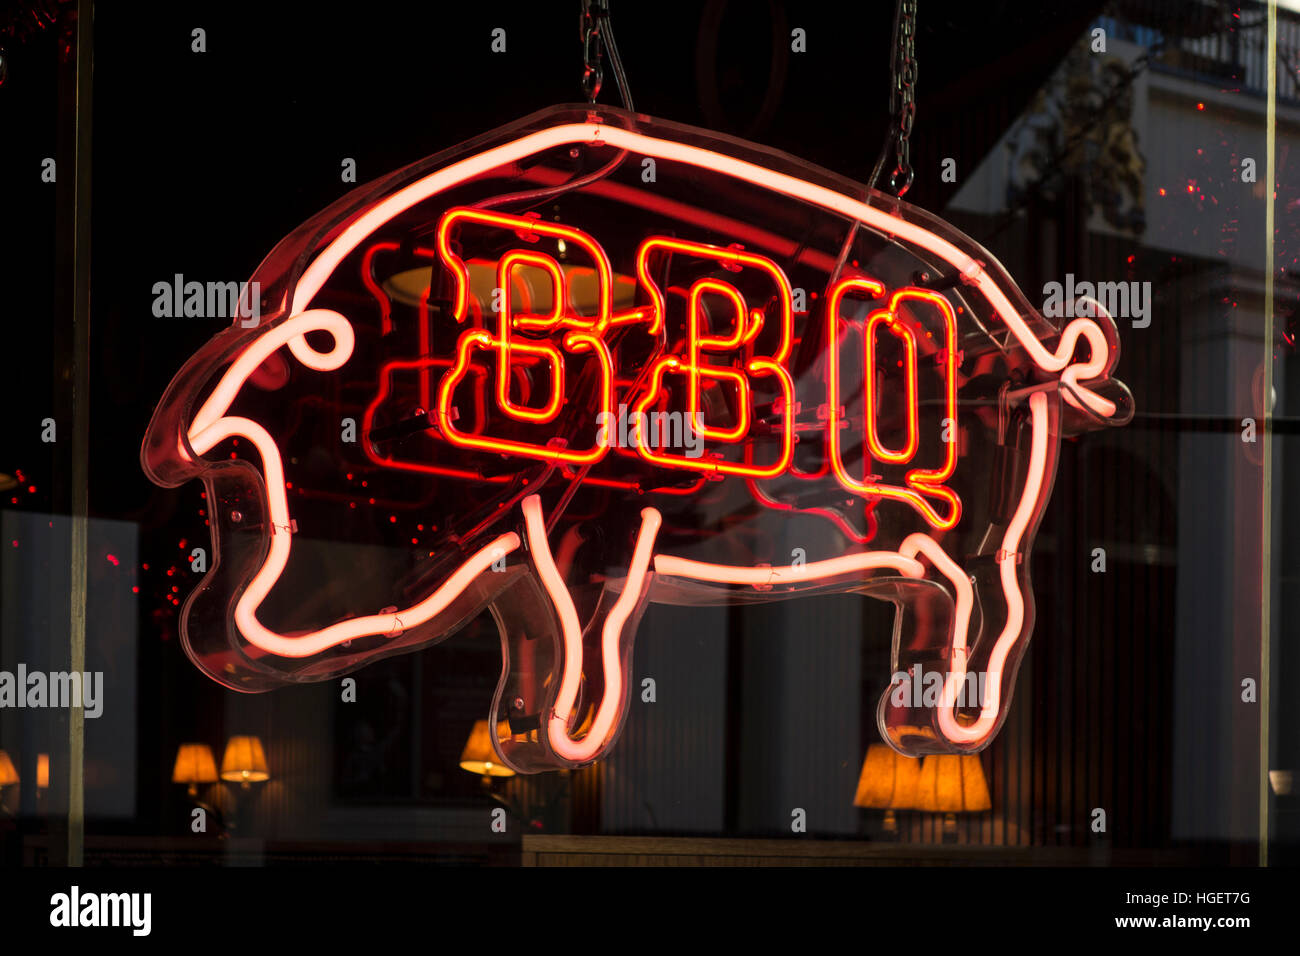 Red BBQ neon restaurant cafe sign in the shape of a pig - Stock Image